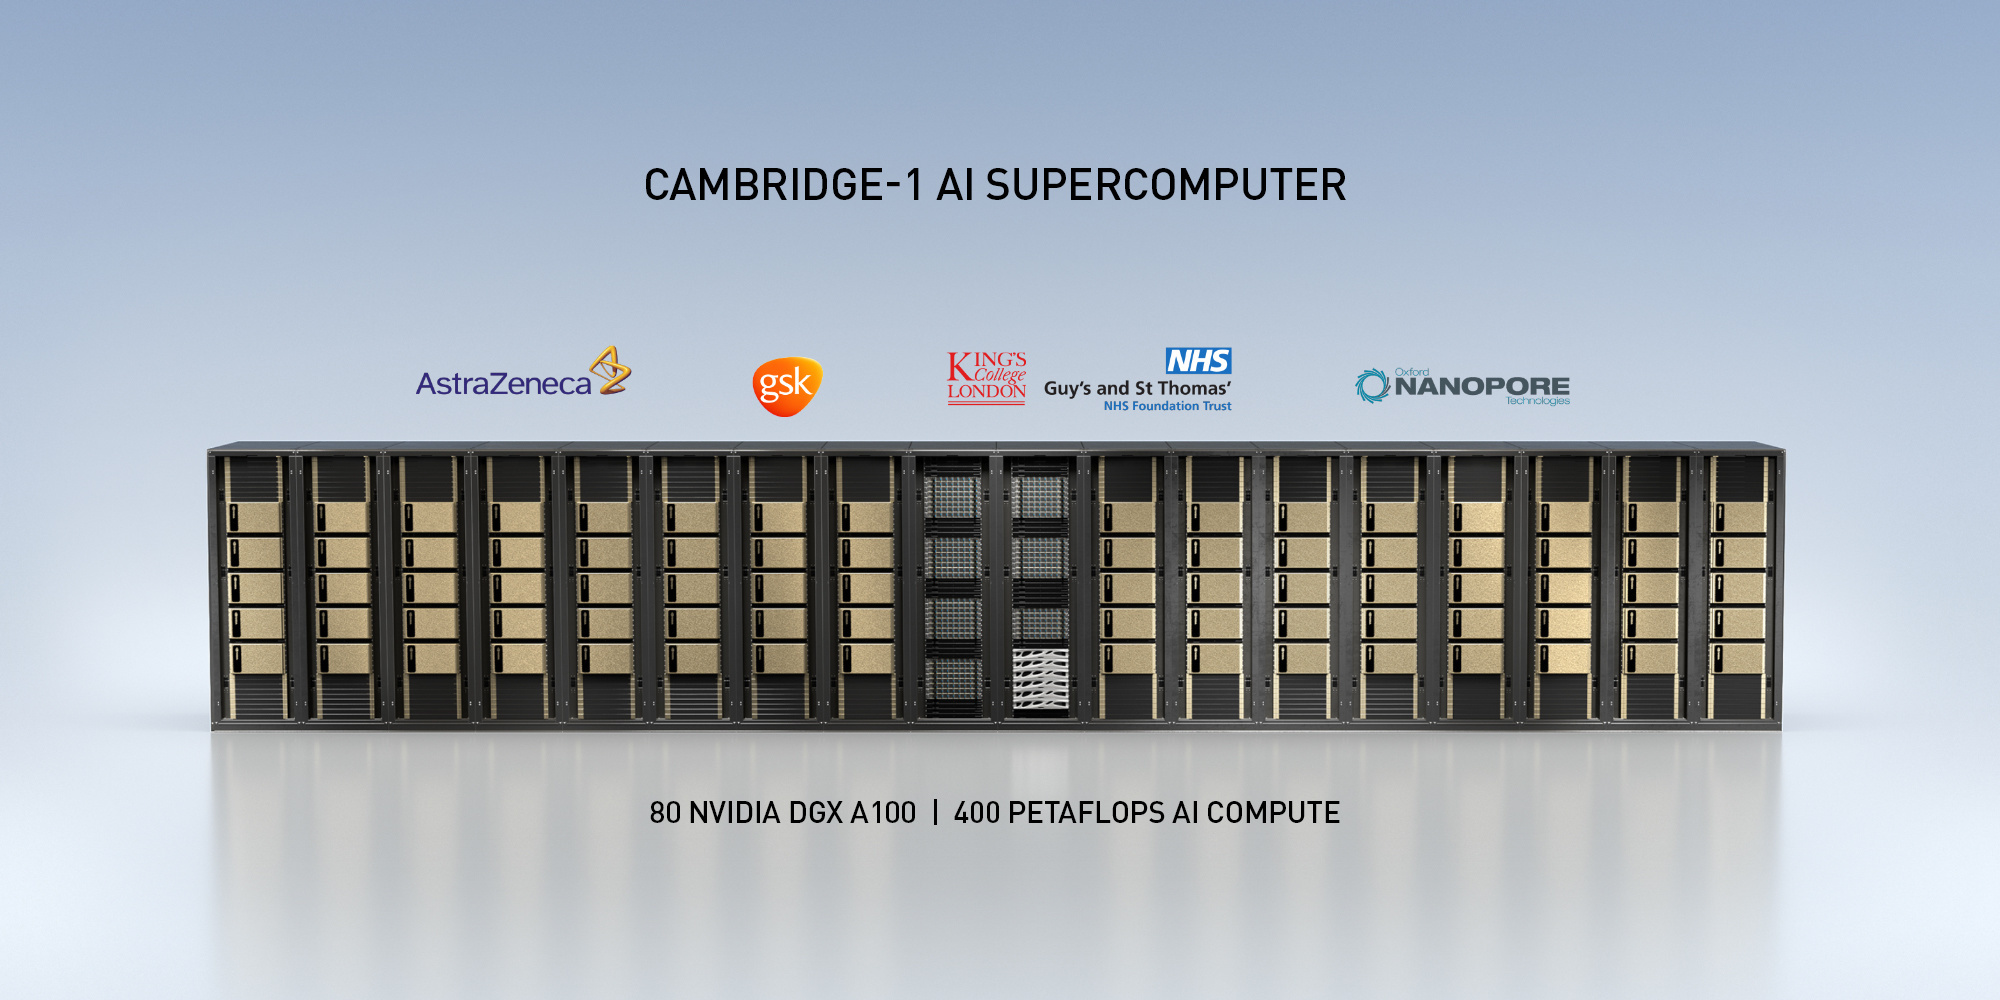 De Cambridge-1 supercomputer van Nvidia, Nvidia